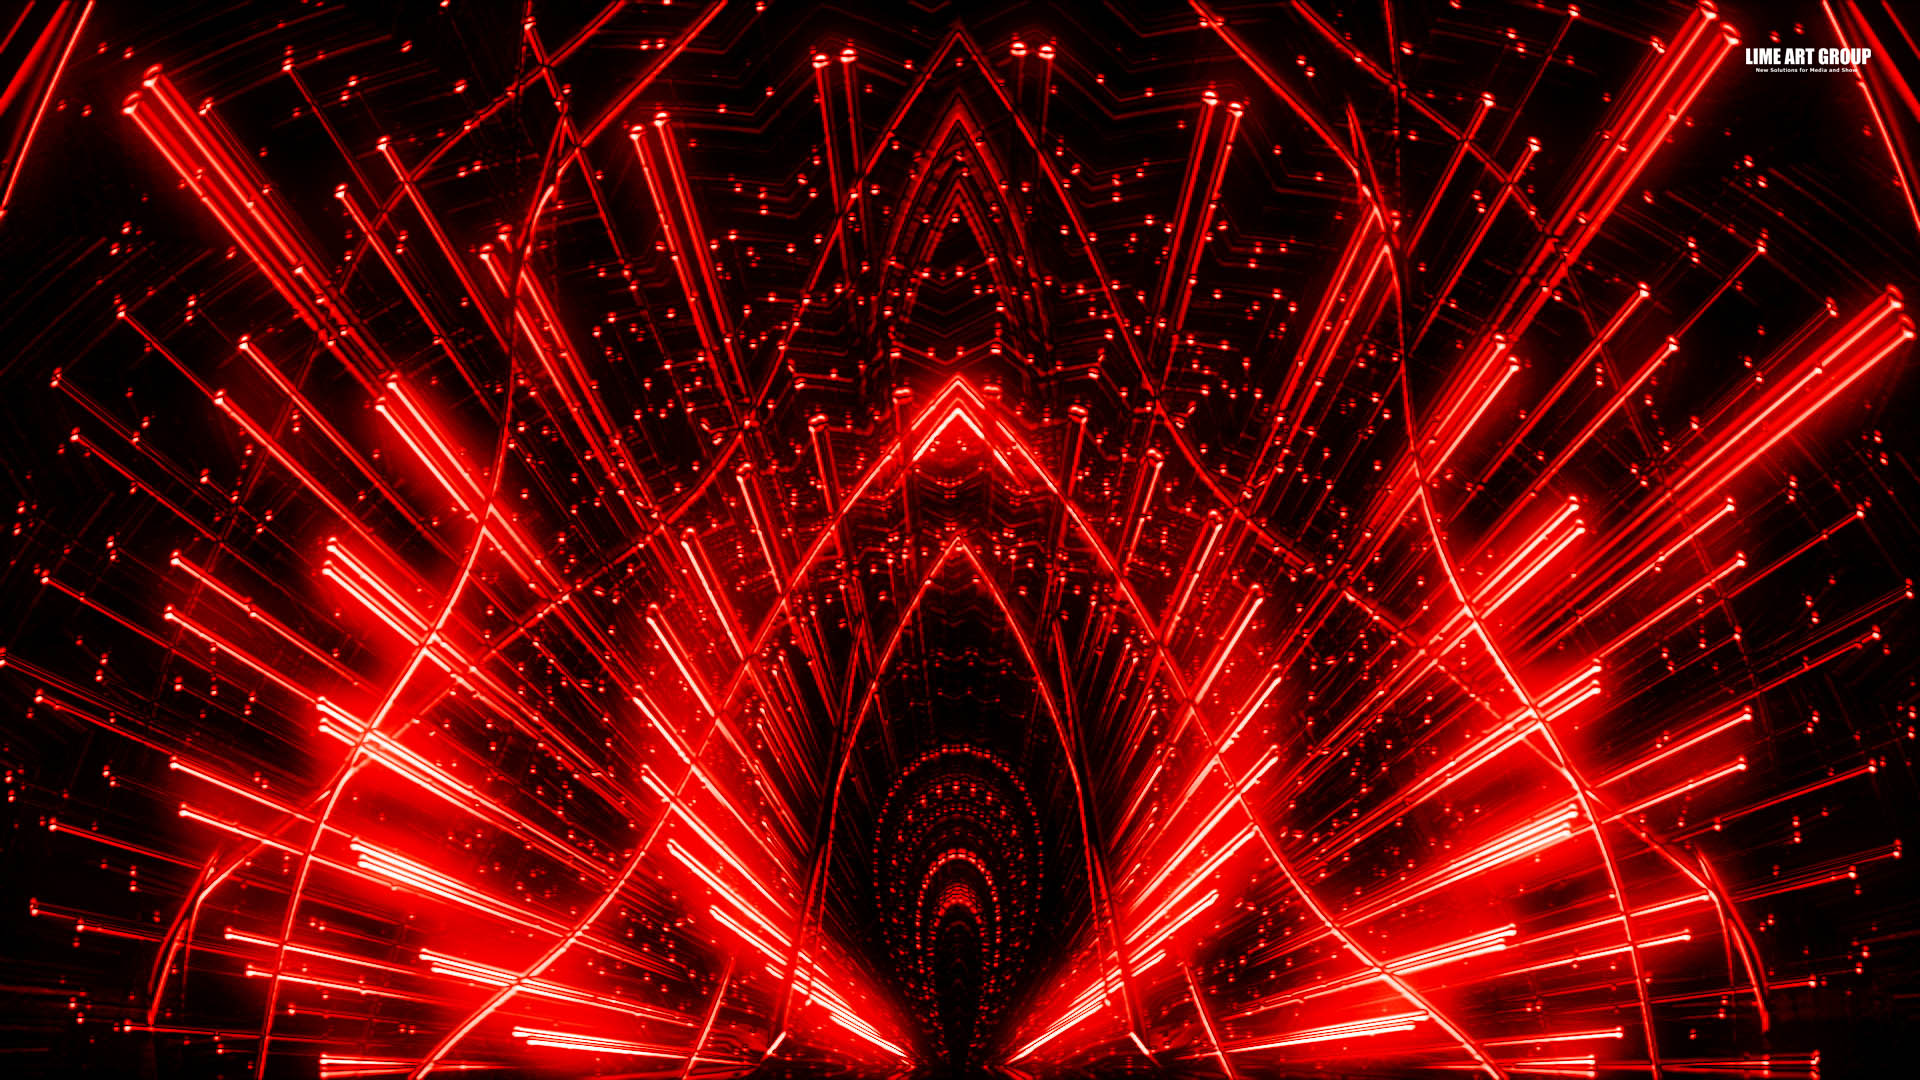 video mapping loops pack with Vj Loops Pack Lovely Red on Vj Loops Pack Vol 27 Backlines further Video Mapping Loops Vol 15 Fold Surface as well Vj Loops Pack Vol 27 Backlines together with Live Visual Loops Pack Vol 12 Interstellar Hypergate in addition Vj Loops Pack Vol 28 Decolines.